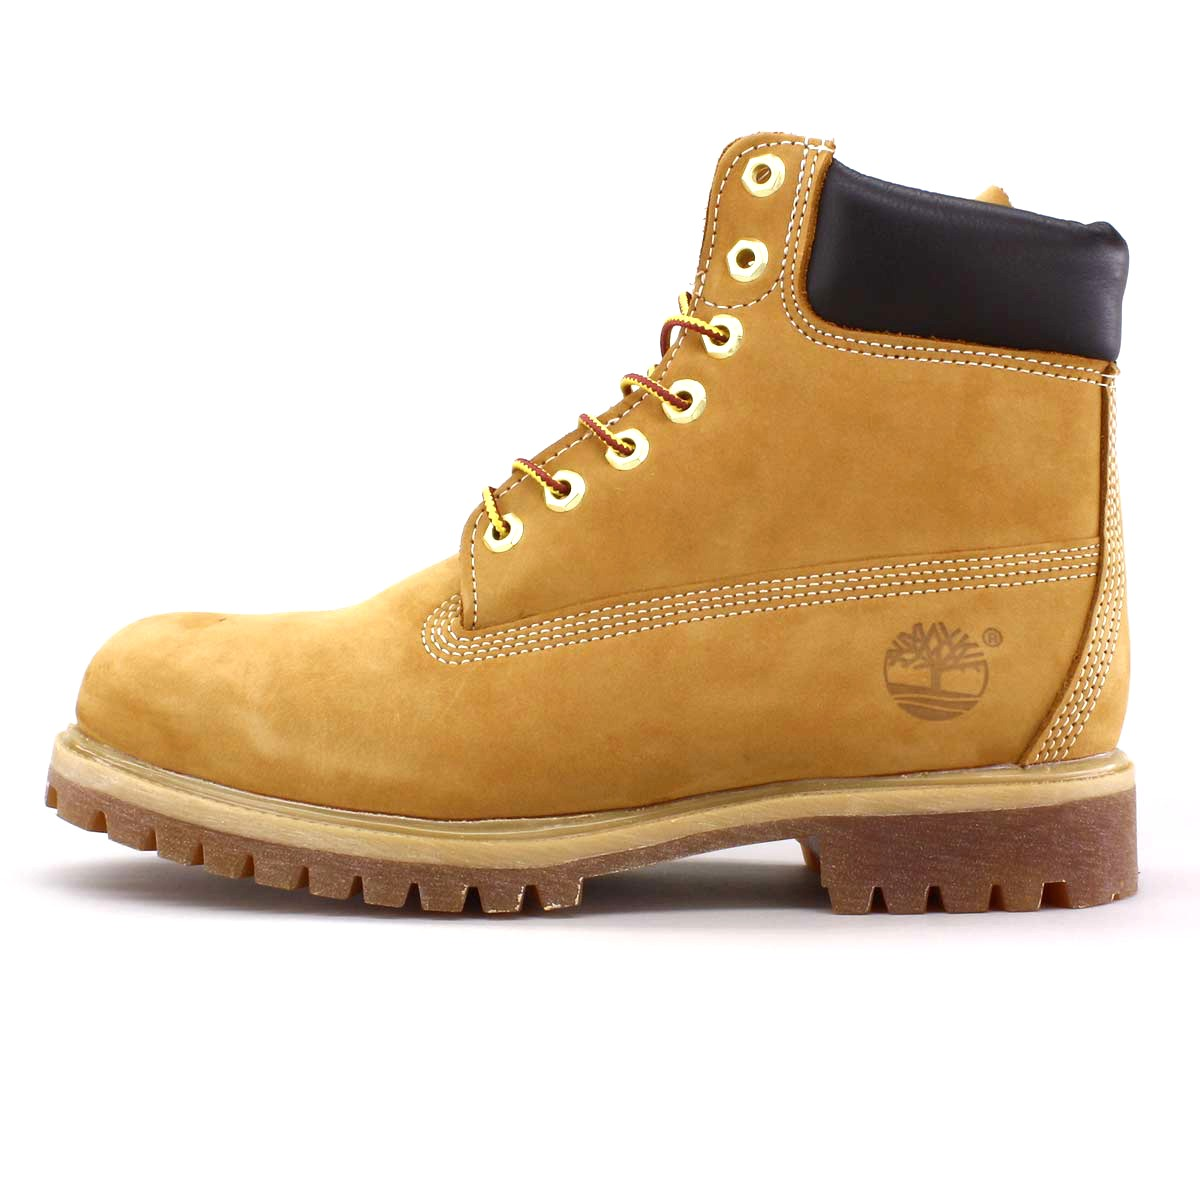 Colored Timberlands | Timberland Dress Boots | Timberland Color Boots